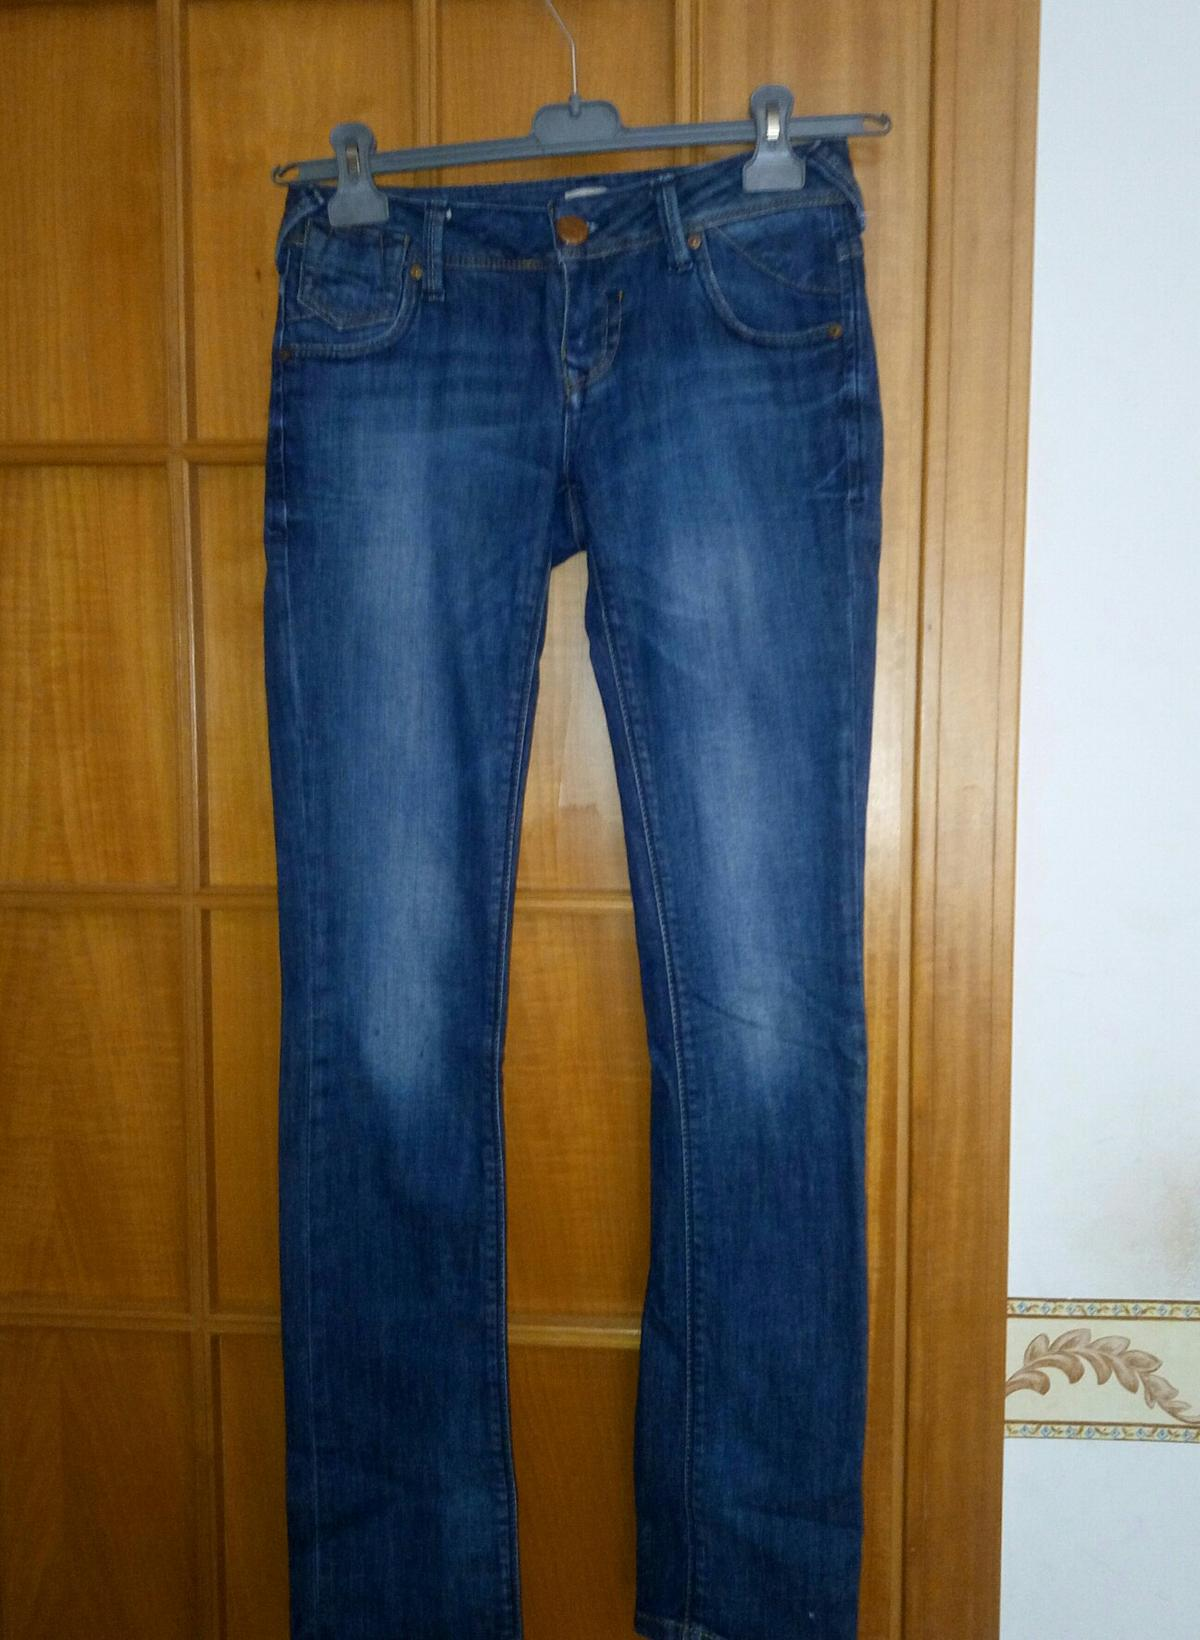 25d4bef077 Jeans aderenti donna